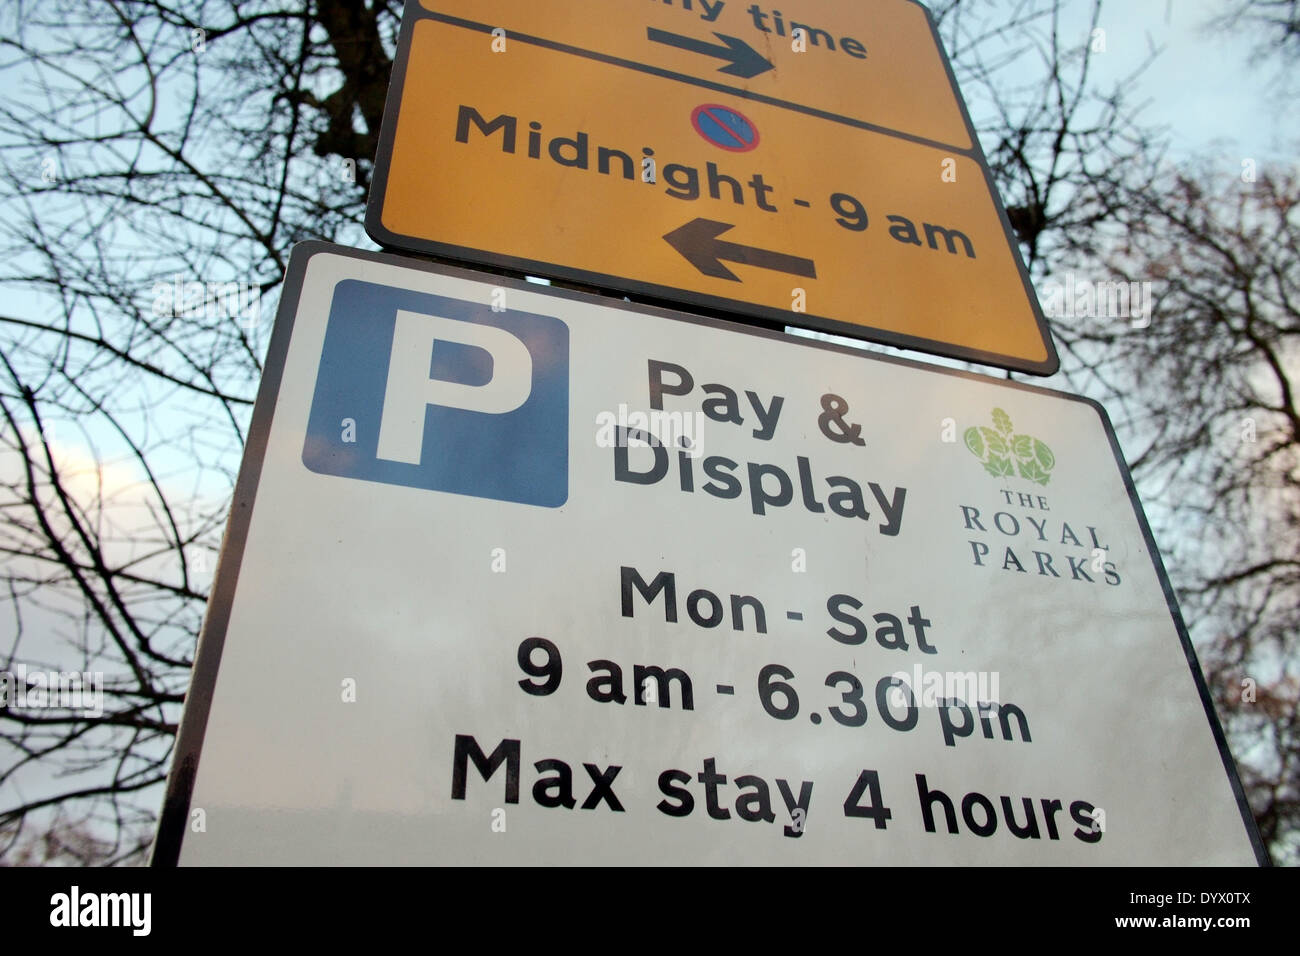 Pay and Display road parking sign in London UK - Stock Image